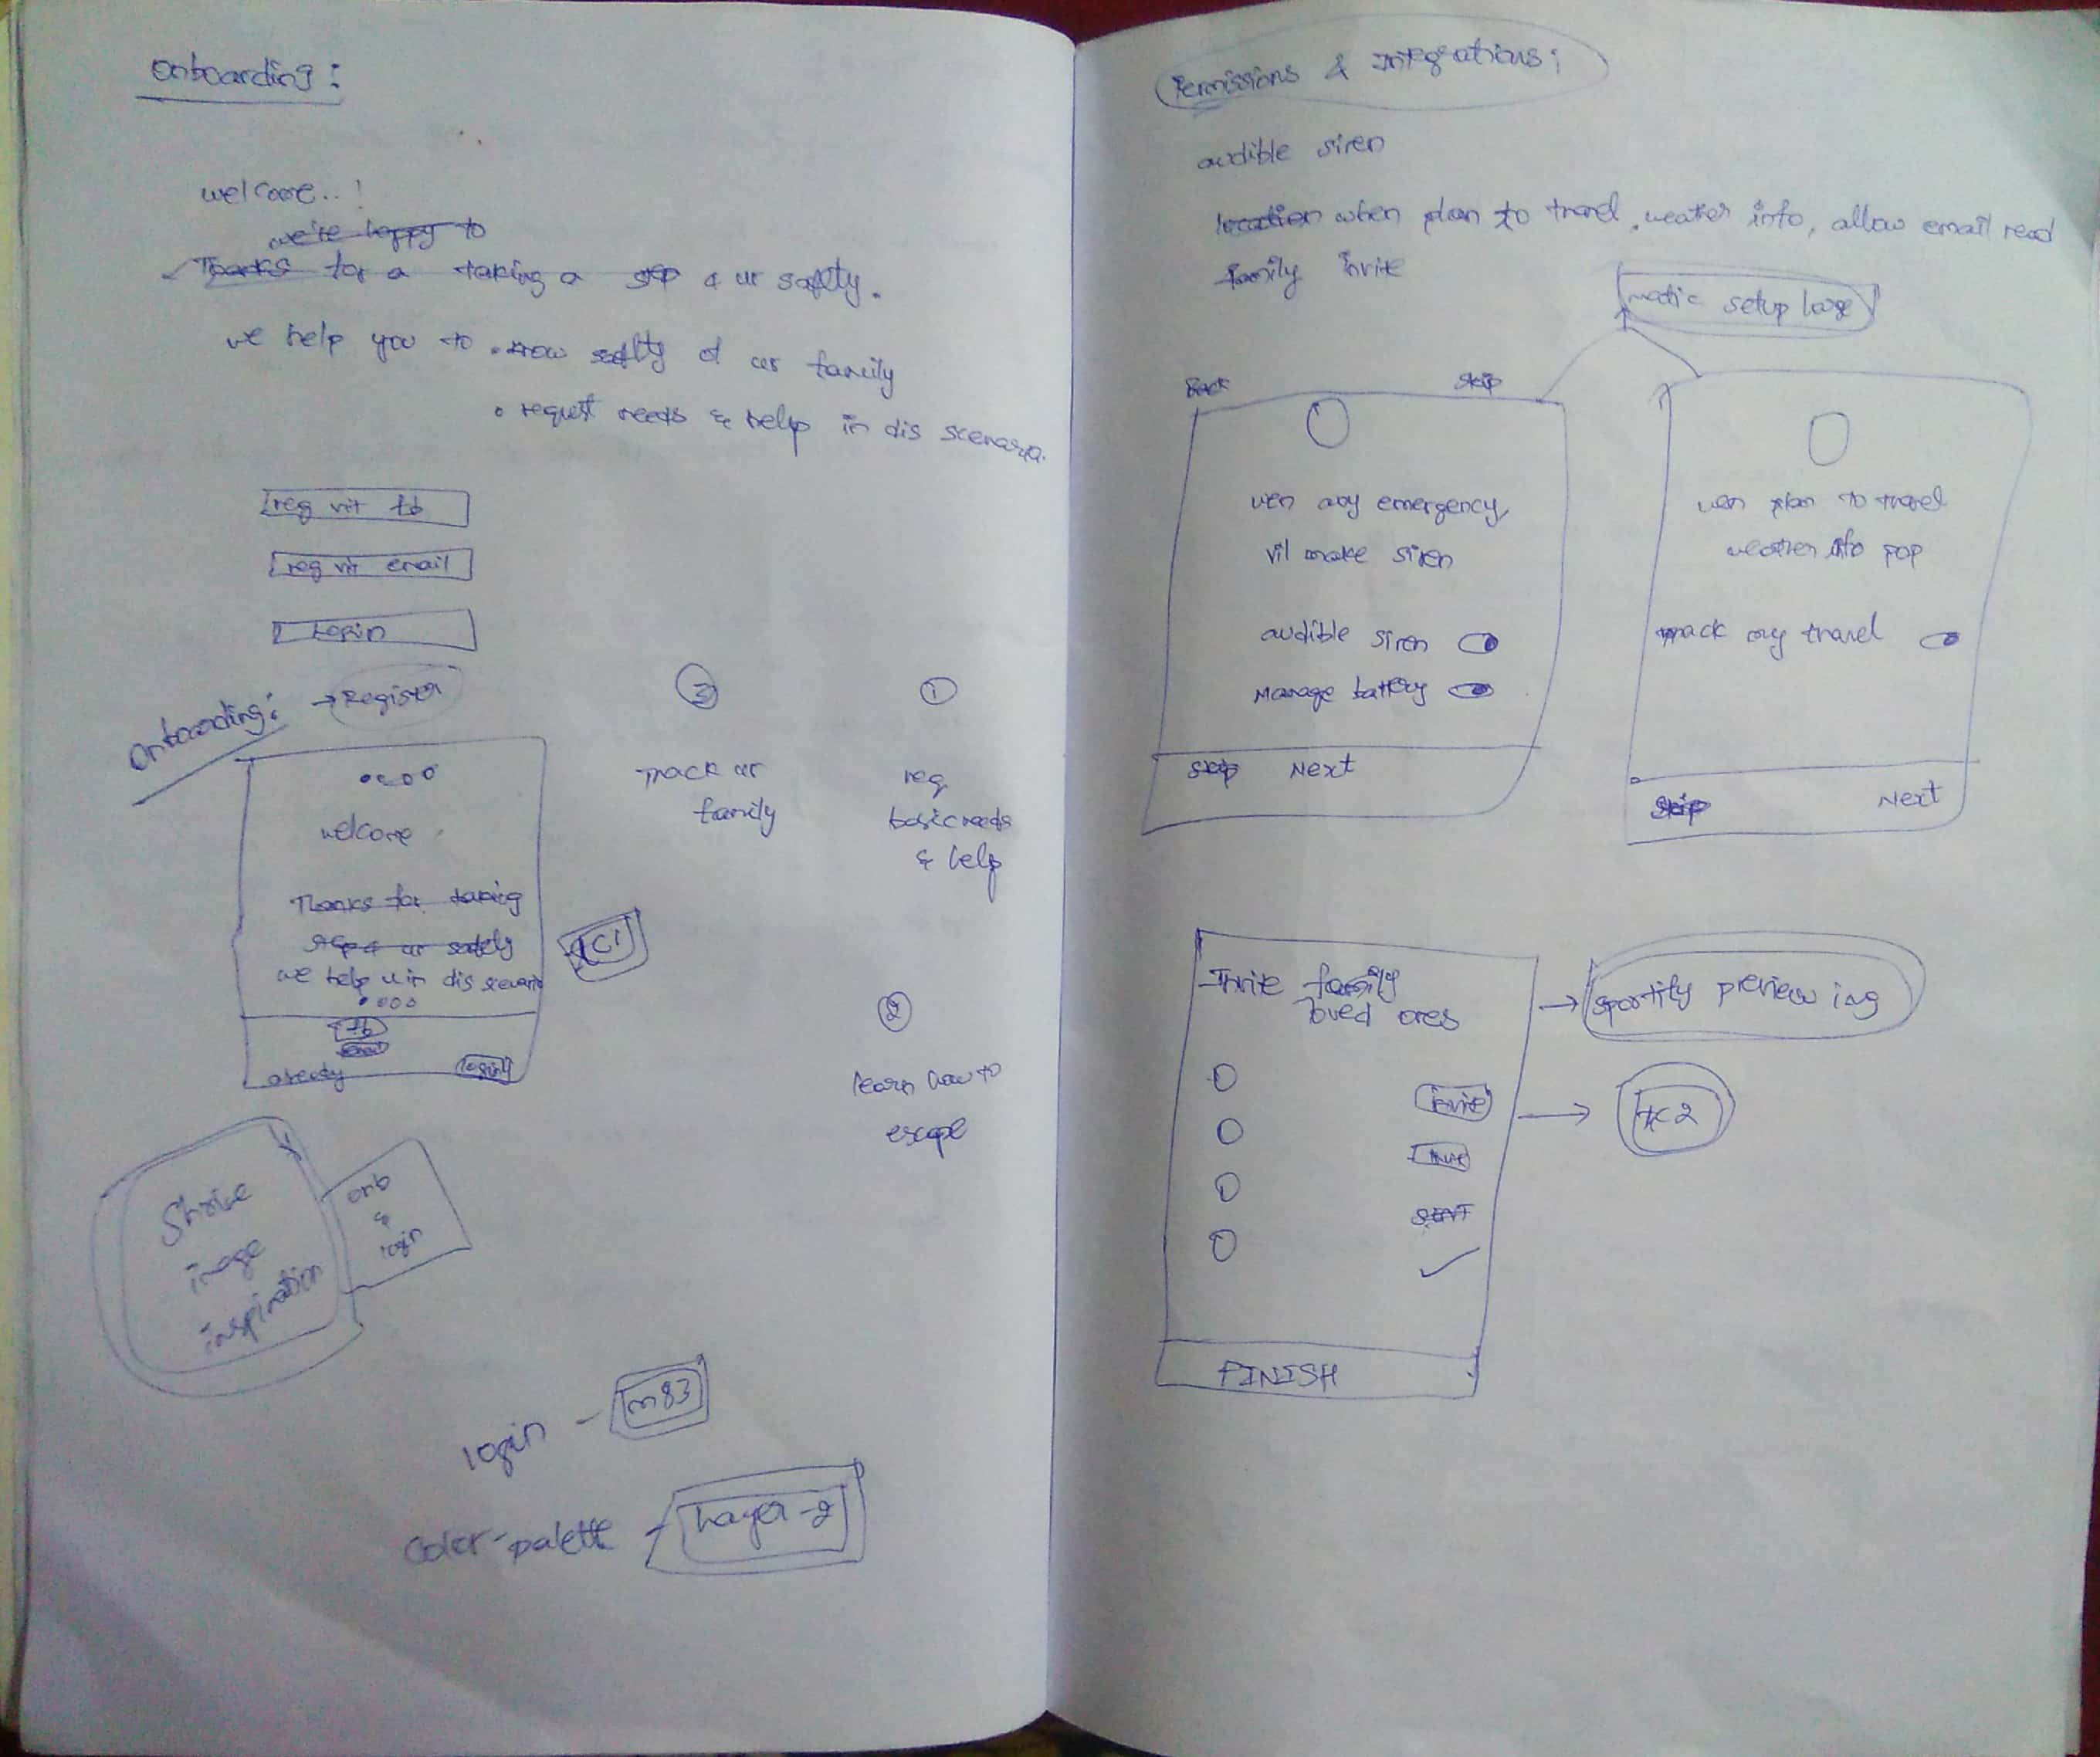 httpsstaticnotion-staticcomff46305a-a88a-4f79-a653-4dbfe0196df9Disaster_Alert_Sketches_2jpg